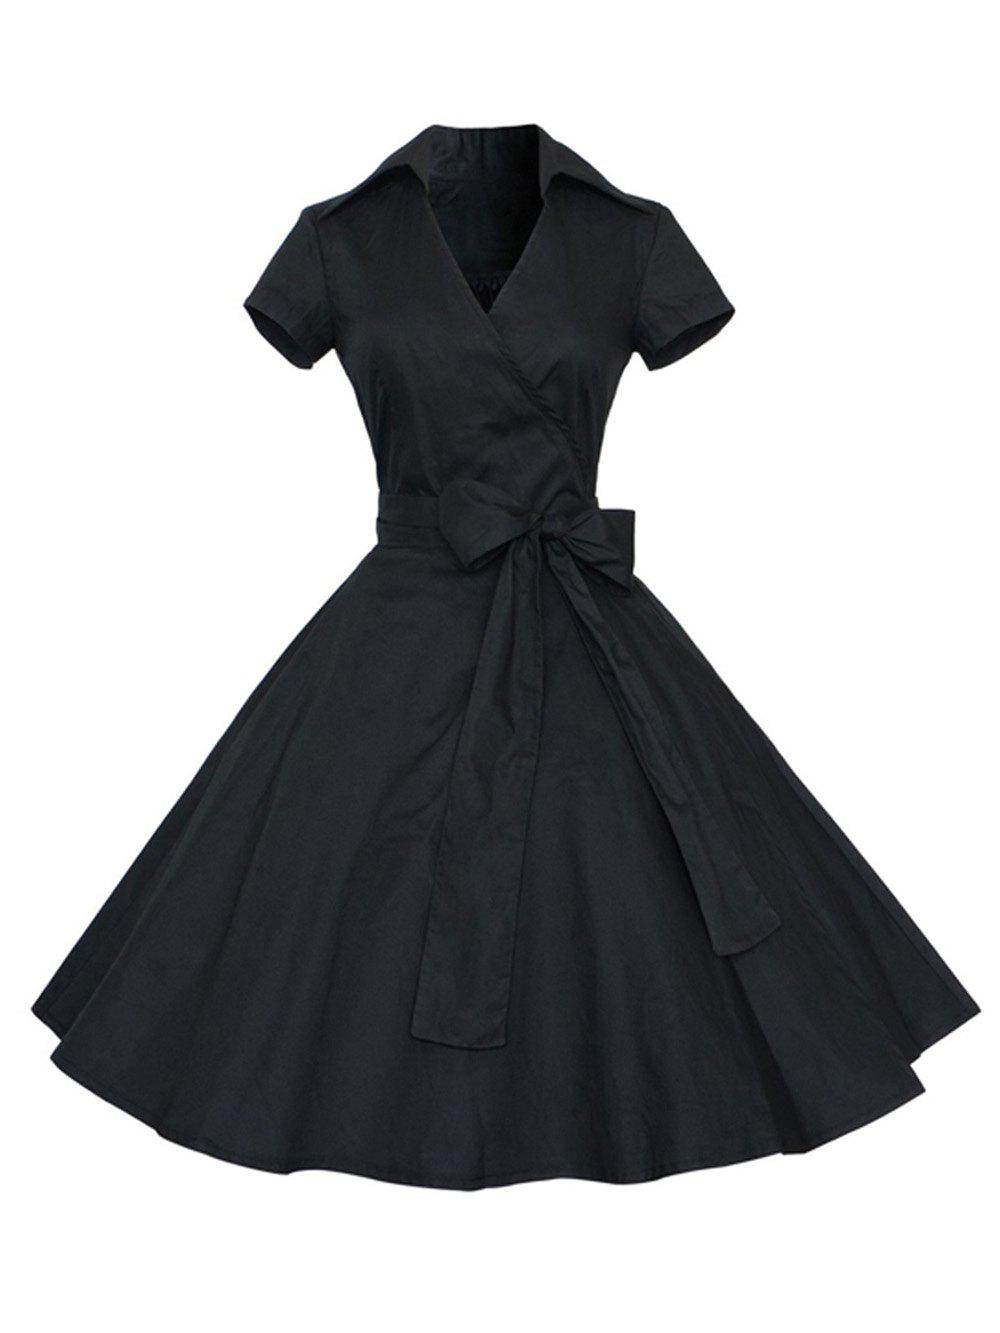 Hot Hepburn Vintage Series Women Dress Spring And Summer Pure Color Lapel V-neck Design Short Sleeve Retro Belt Dress